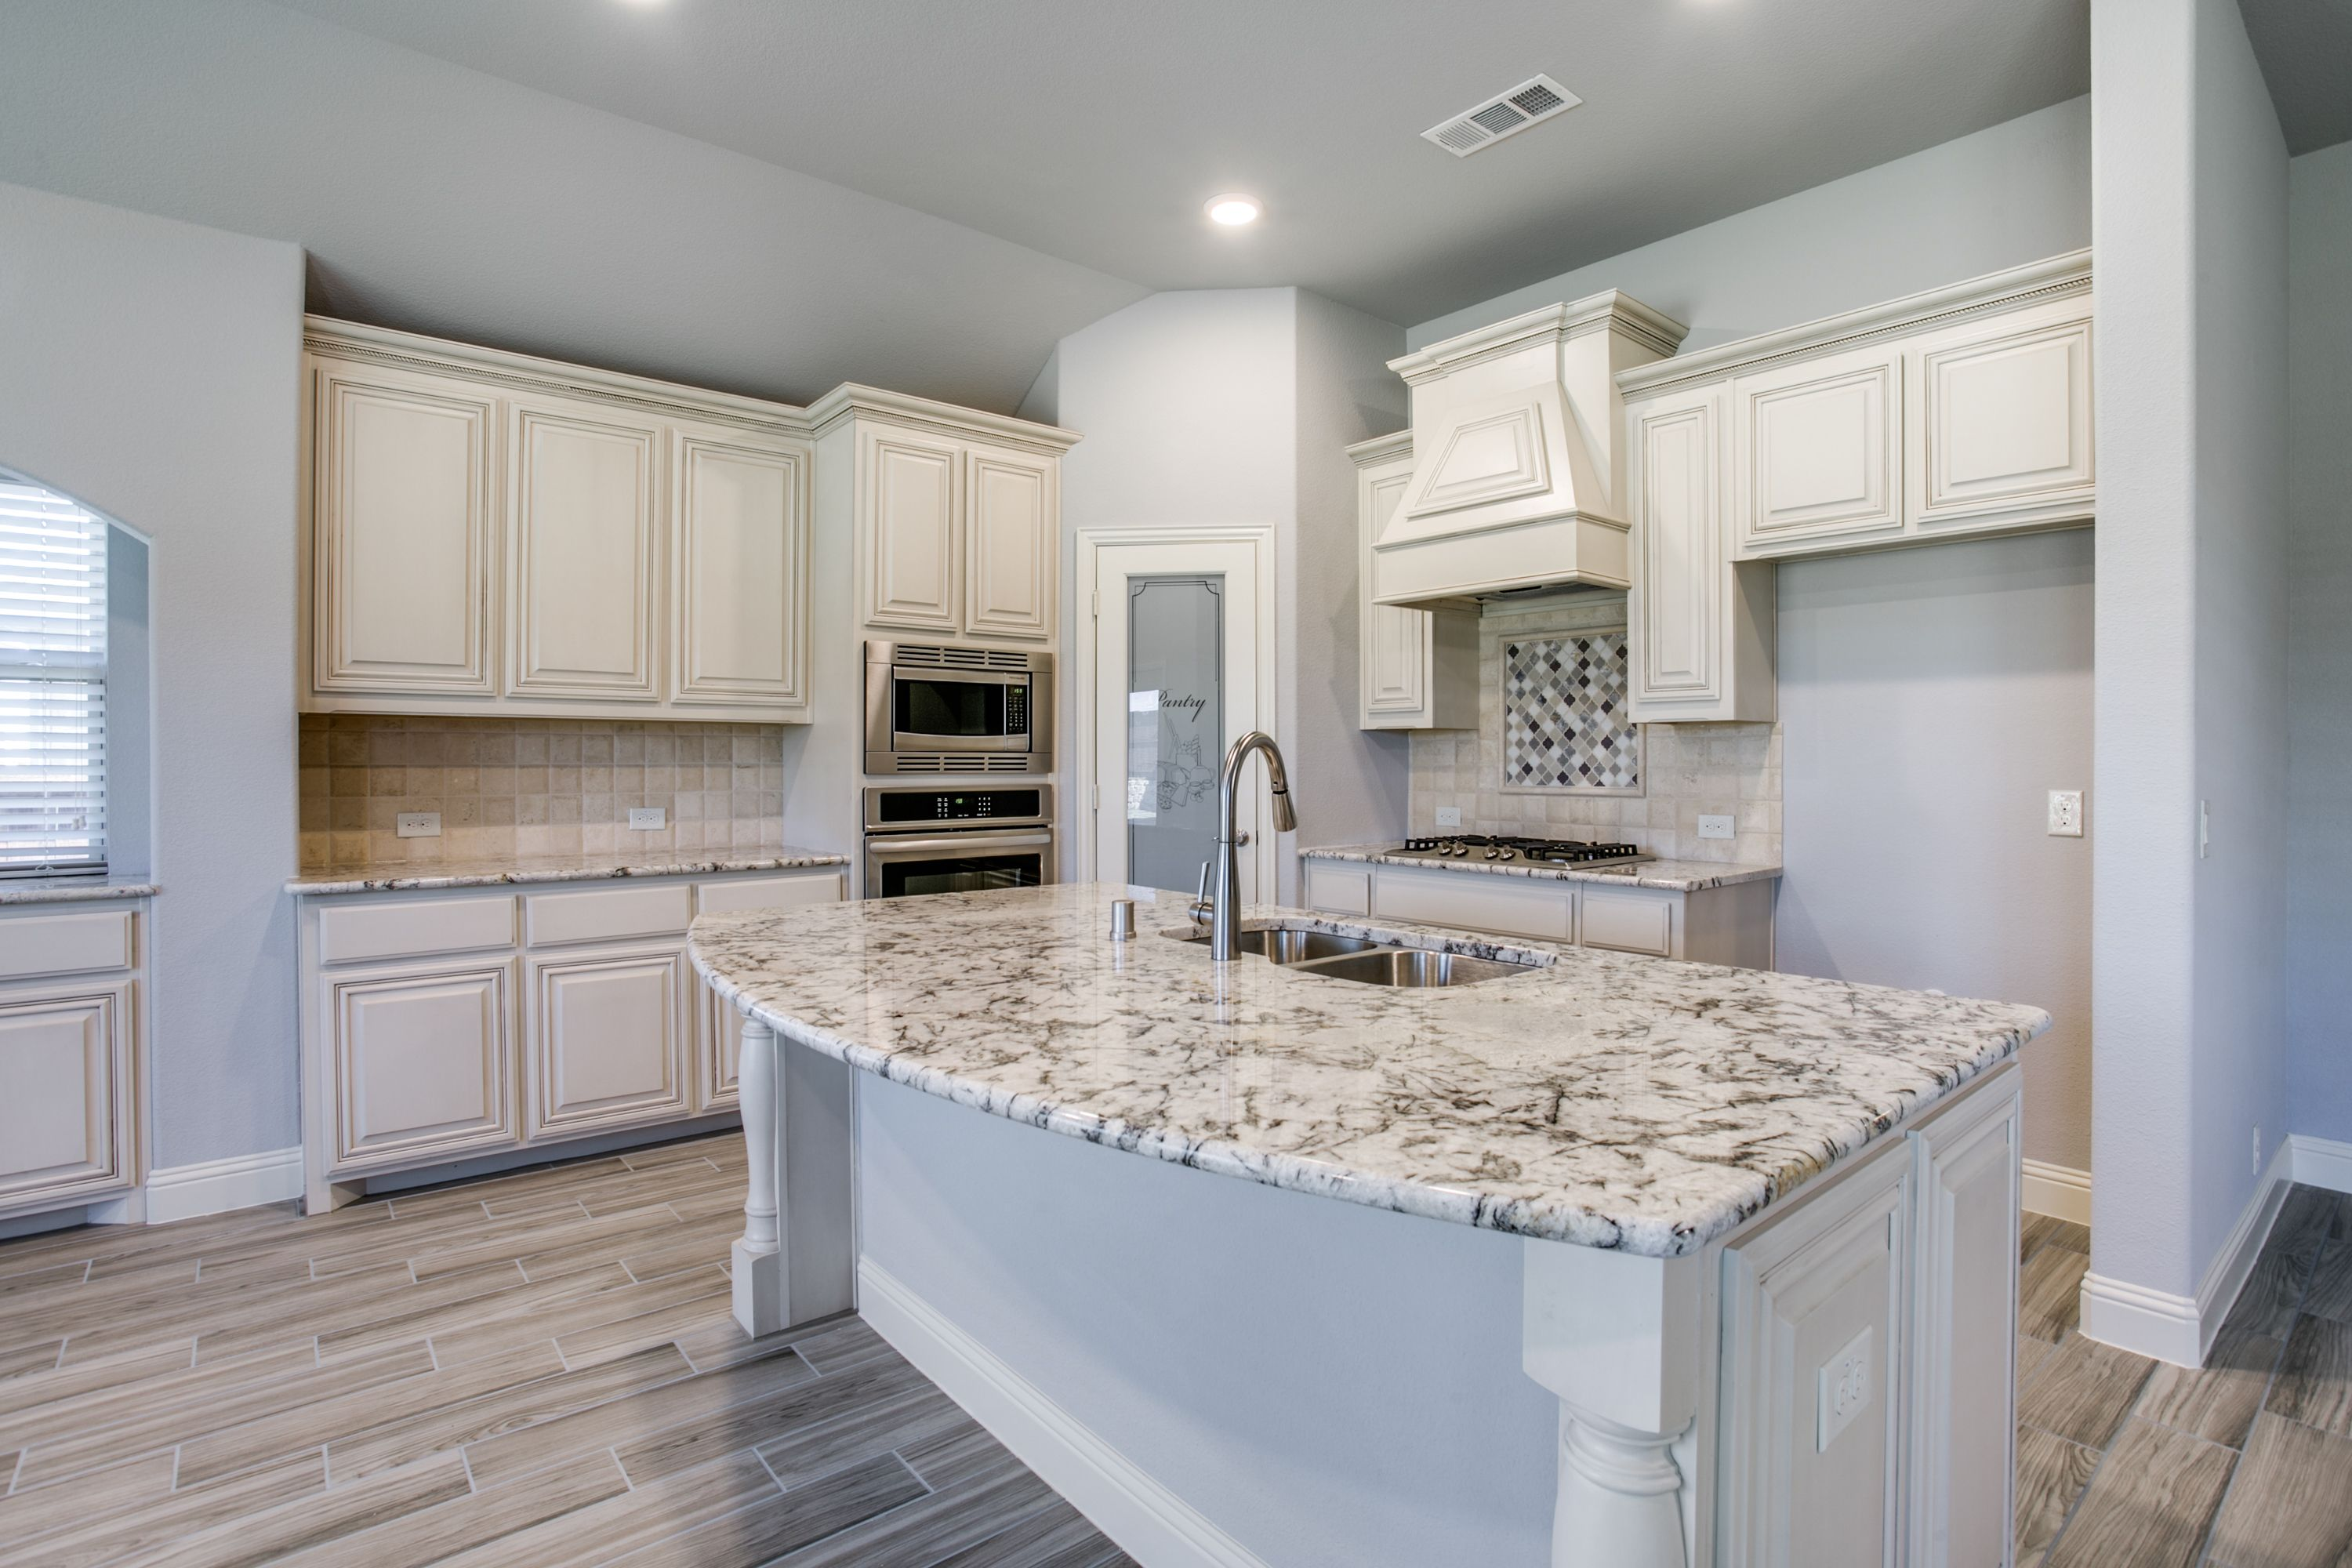 Lots Of Counter Space Light And Beauty In This Kitchen Kitchen Dreamkitchen Newhome Log Home Kitchens Bloomfield Homes Home